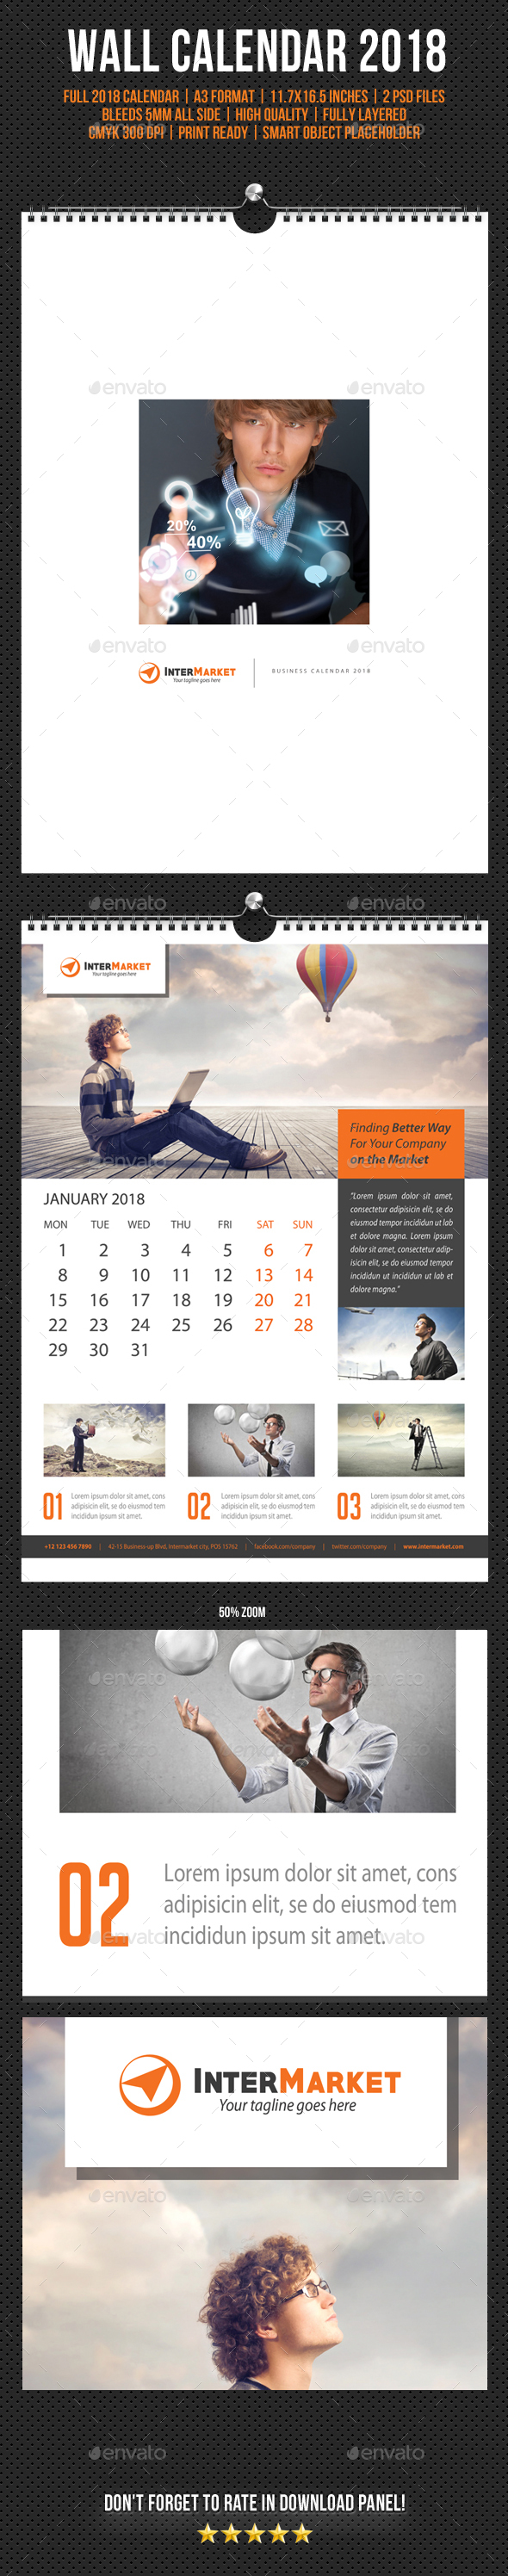 Corporate Wall Calendar 2018 V05 - Calendars Stationery